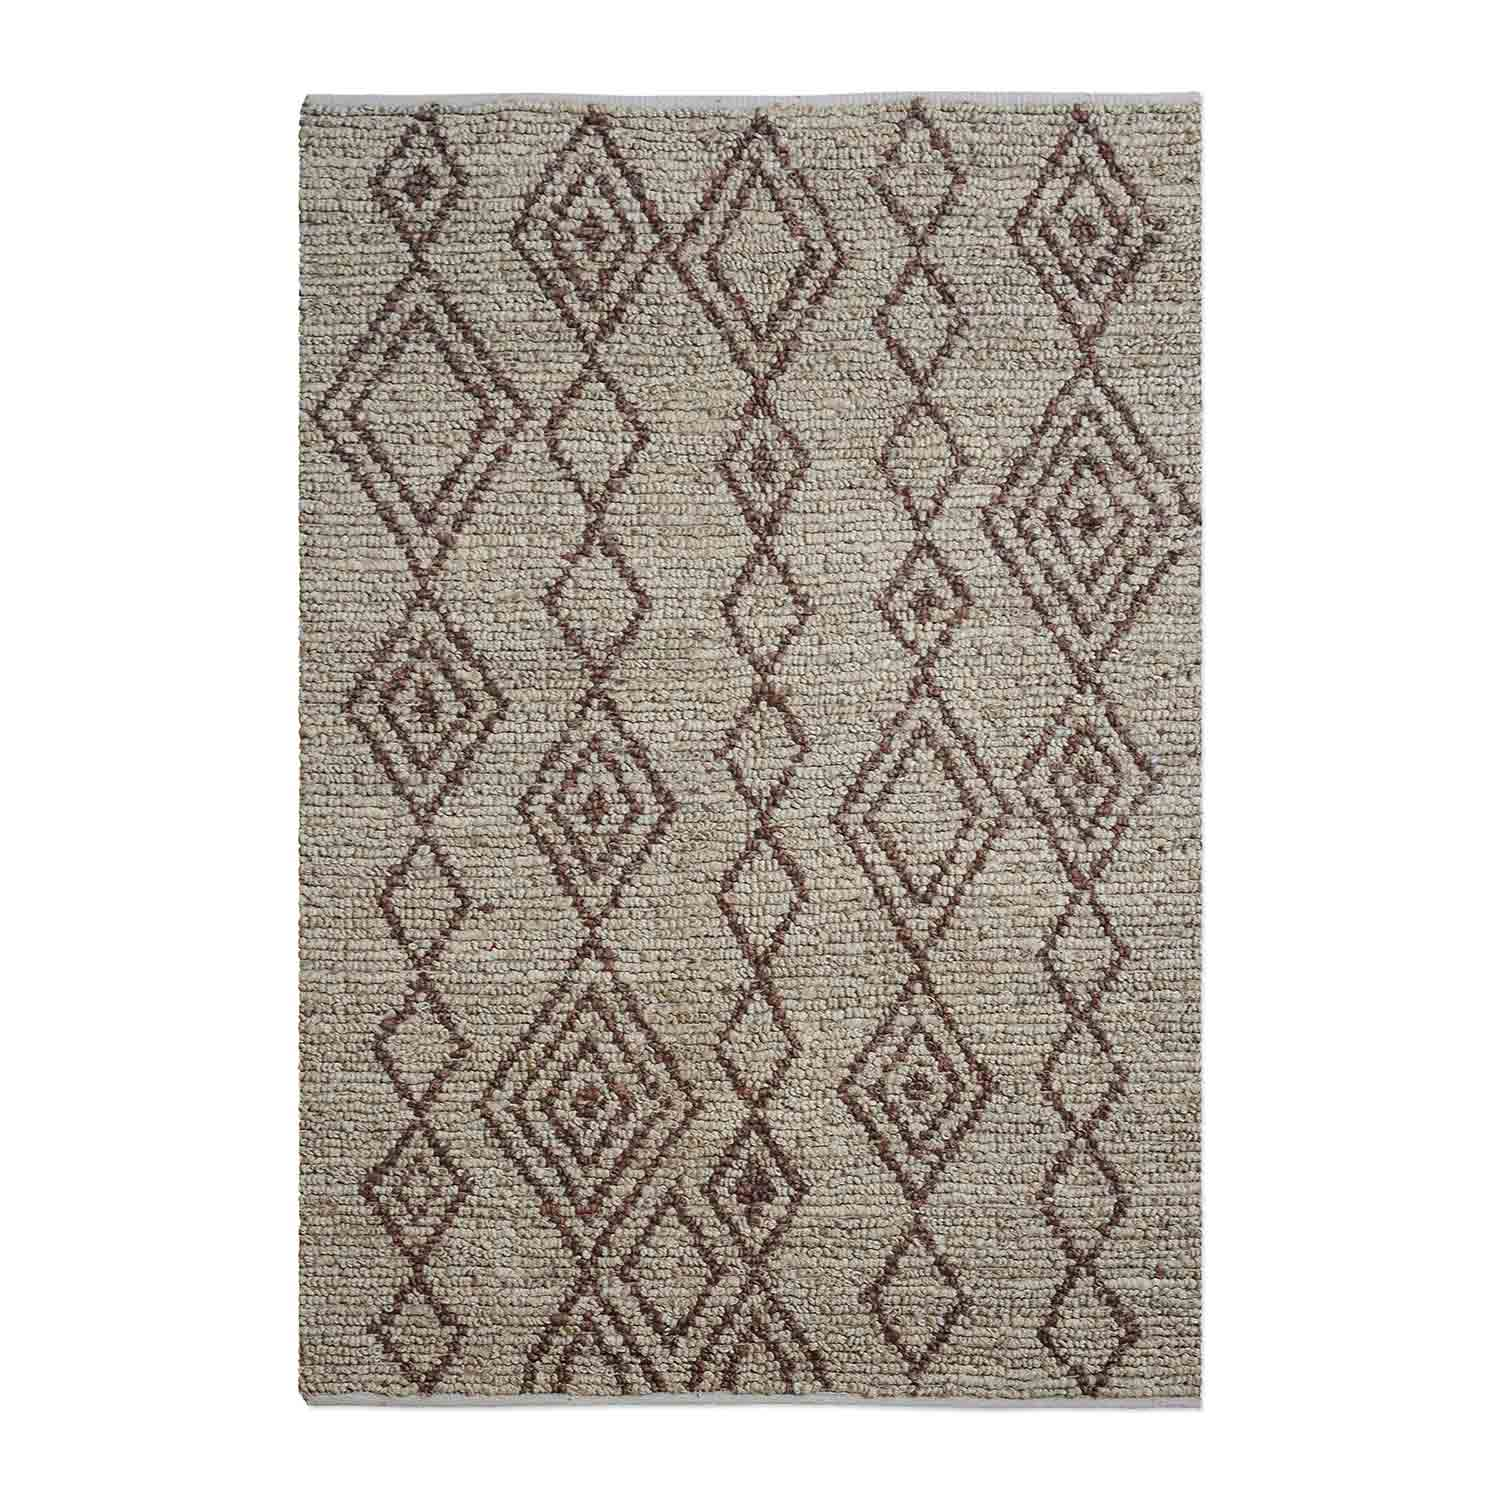 Uttermost Onam 9 x 12 Rug - Brown